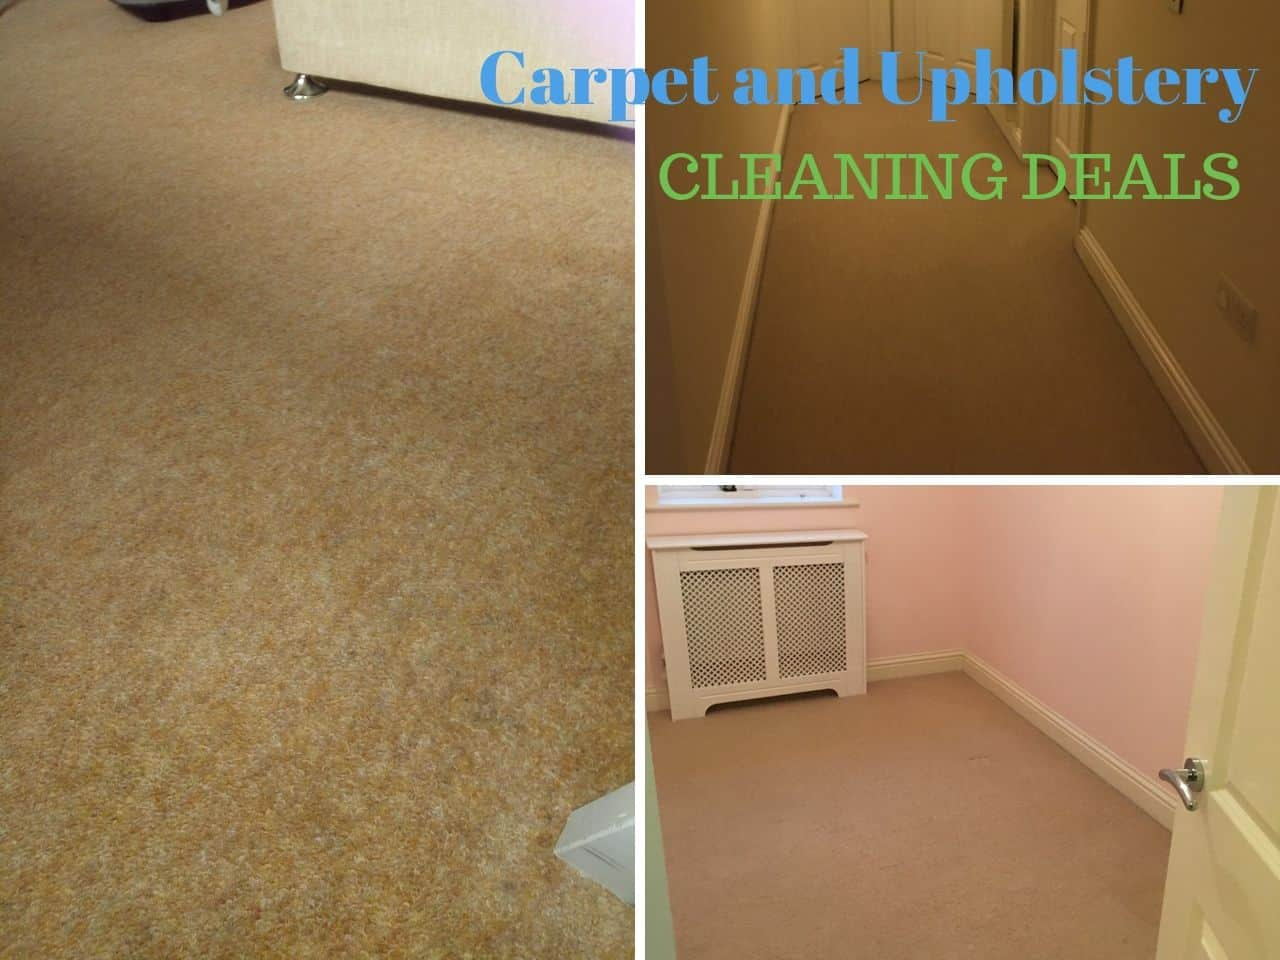 Carpet And Upholstery Cleaning in Hampshire Seasonal Deals